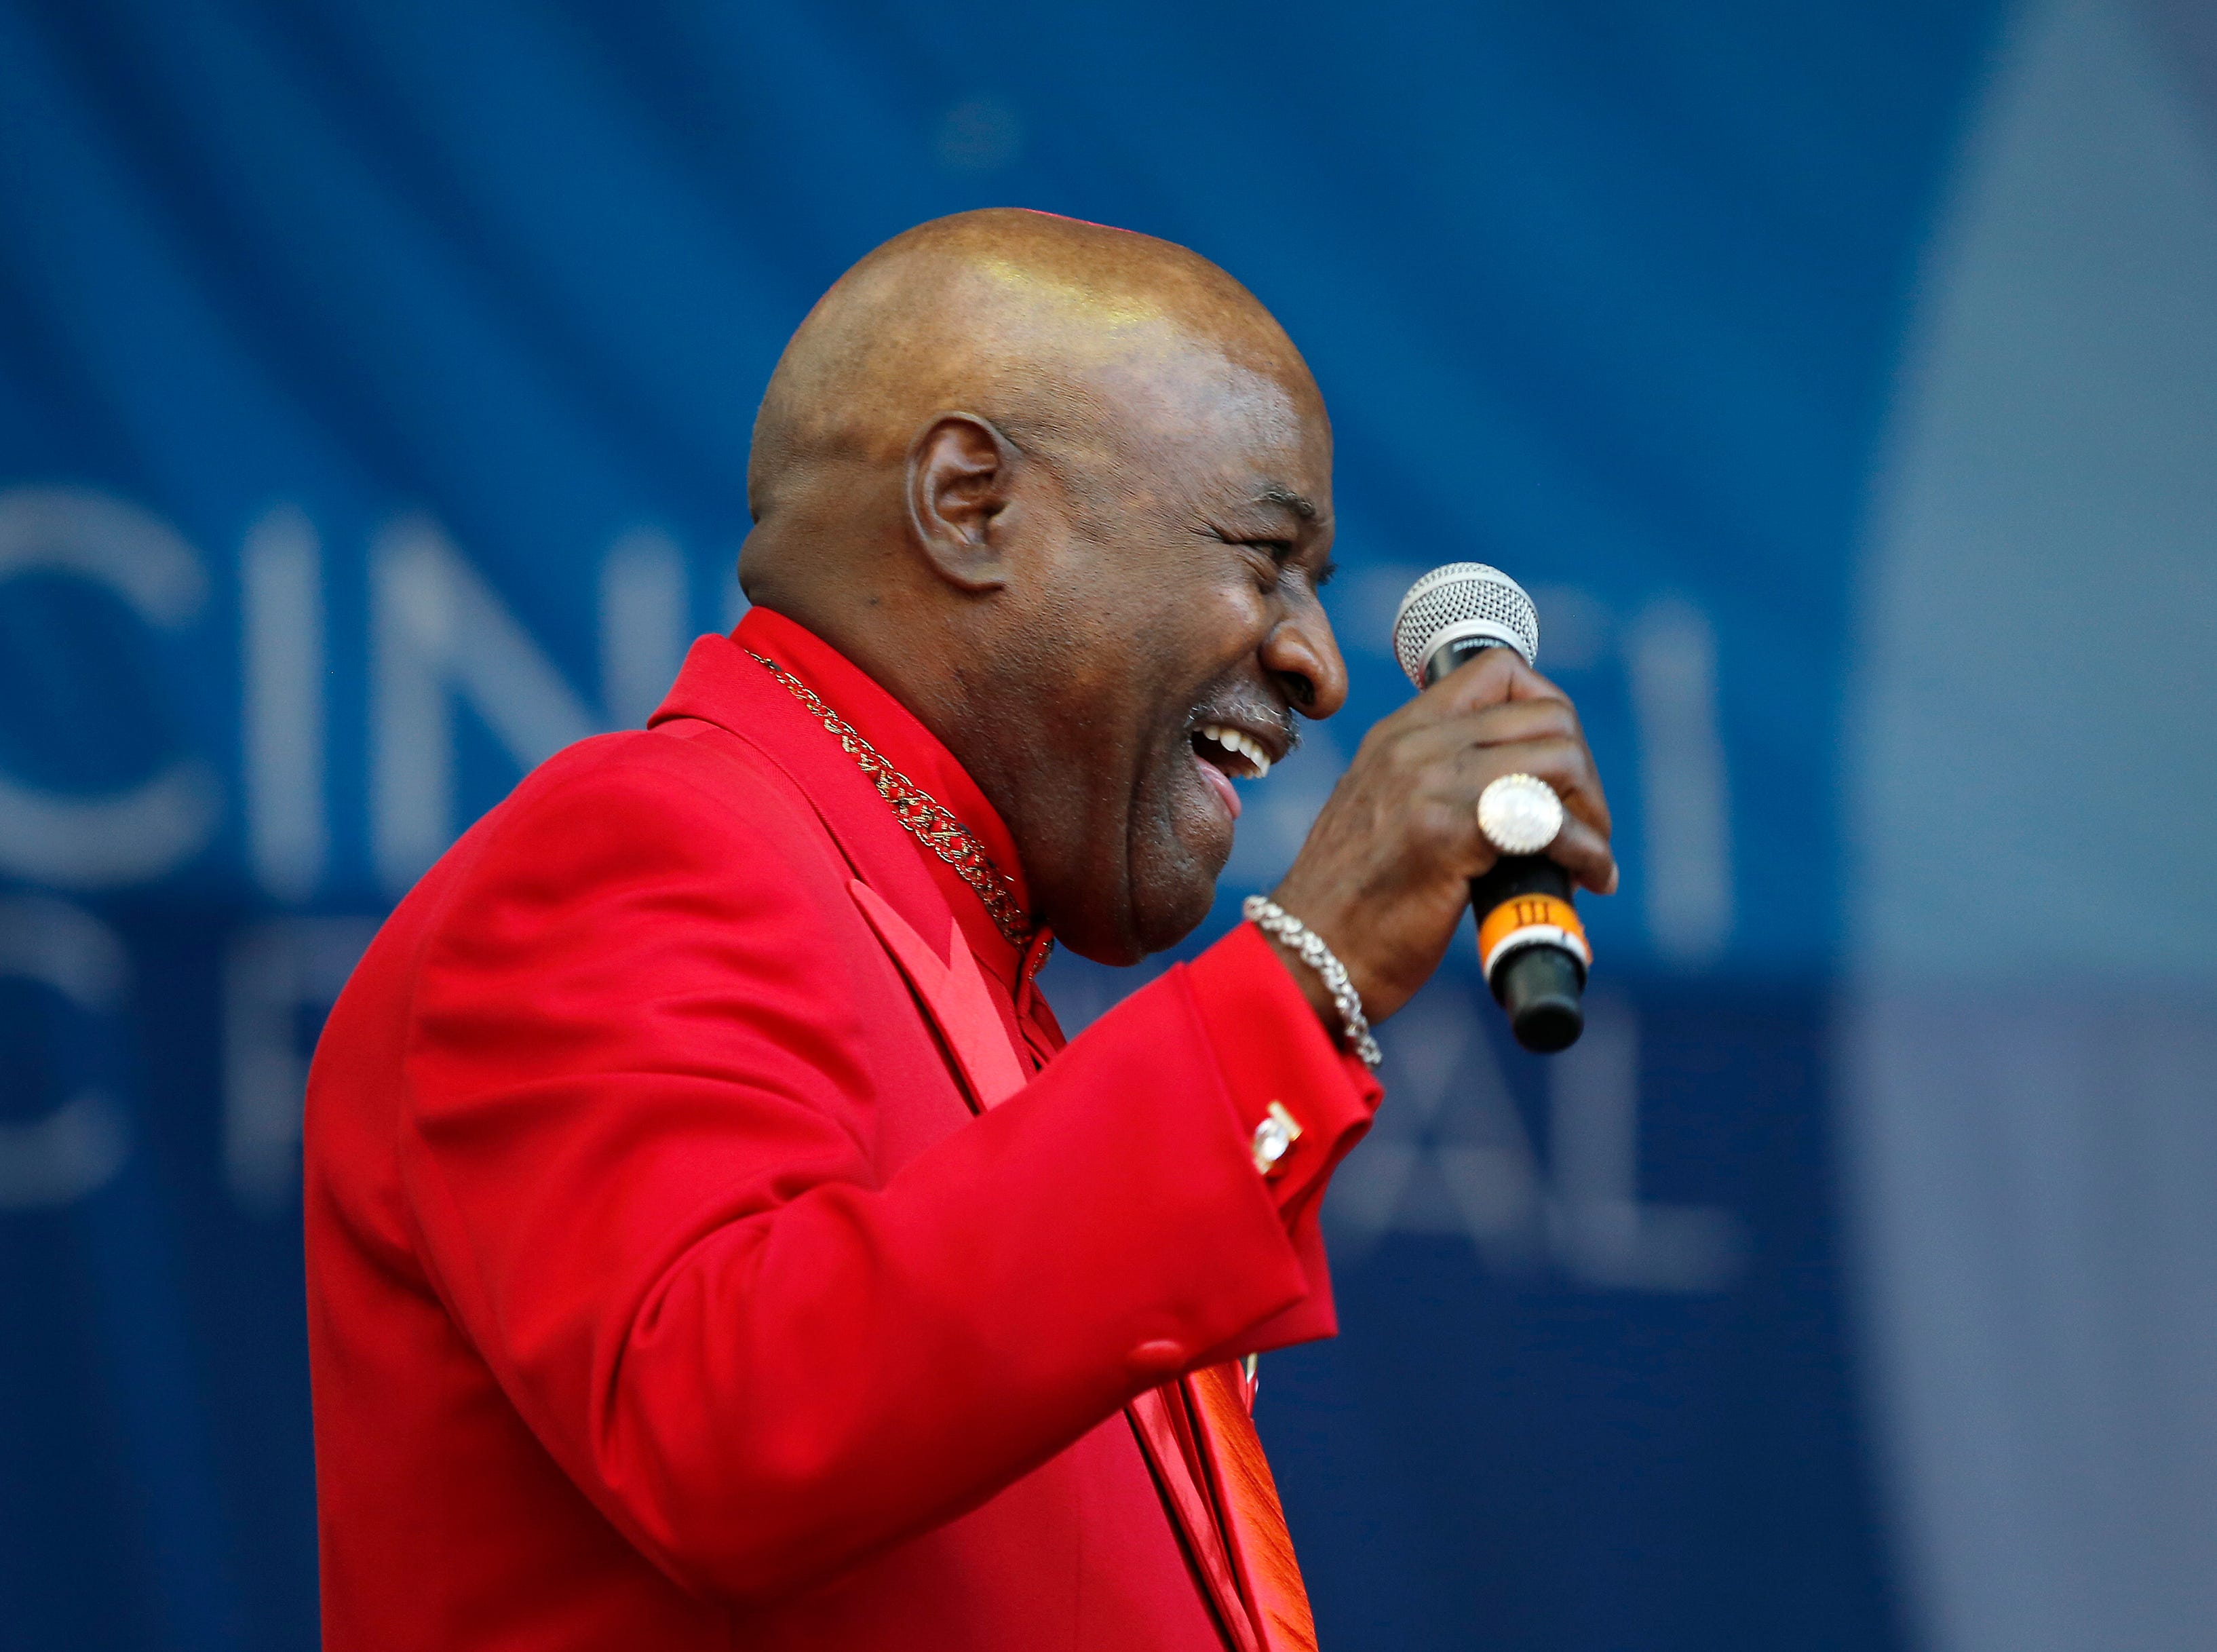 Walter Williams of The O'Jays performs during the Cincinnati Music Festival.